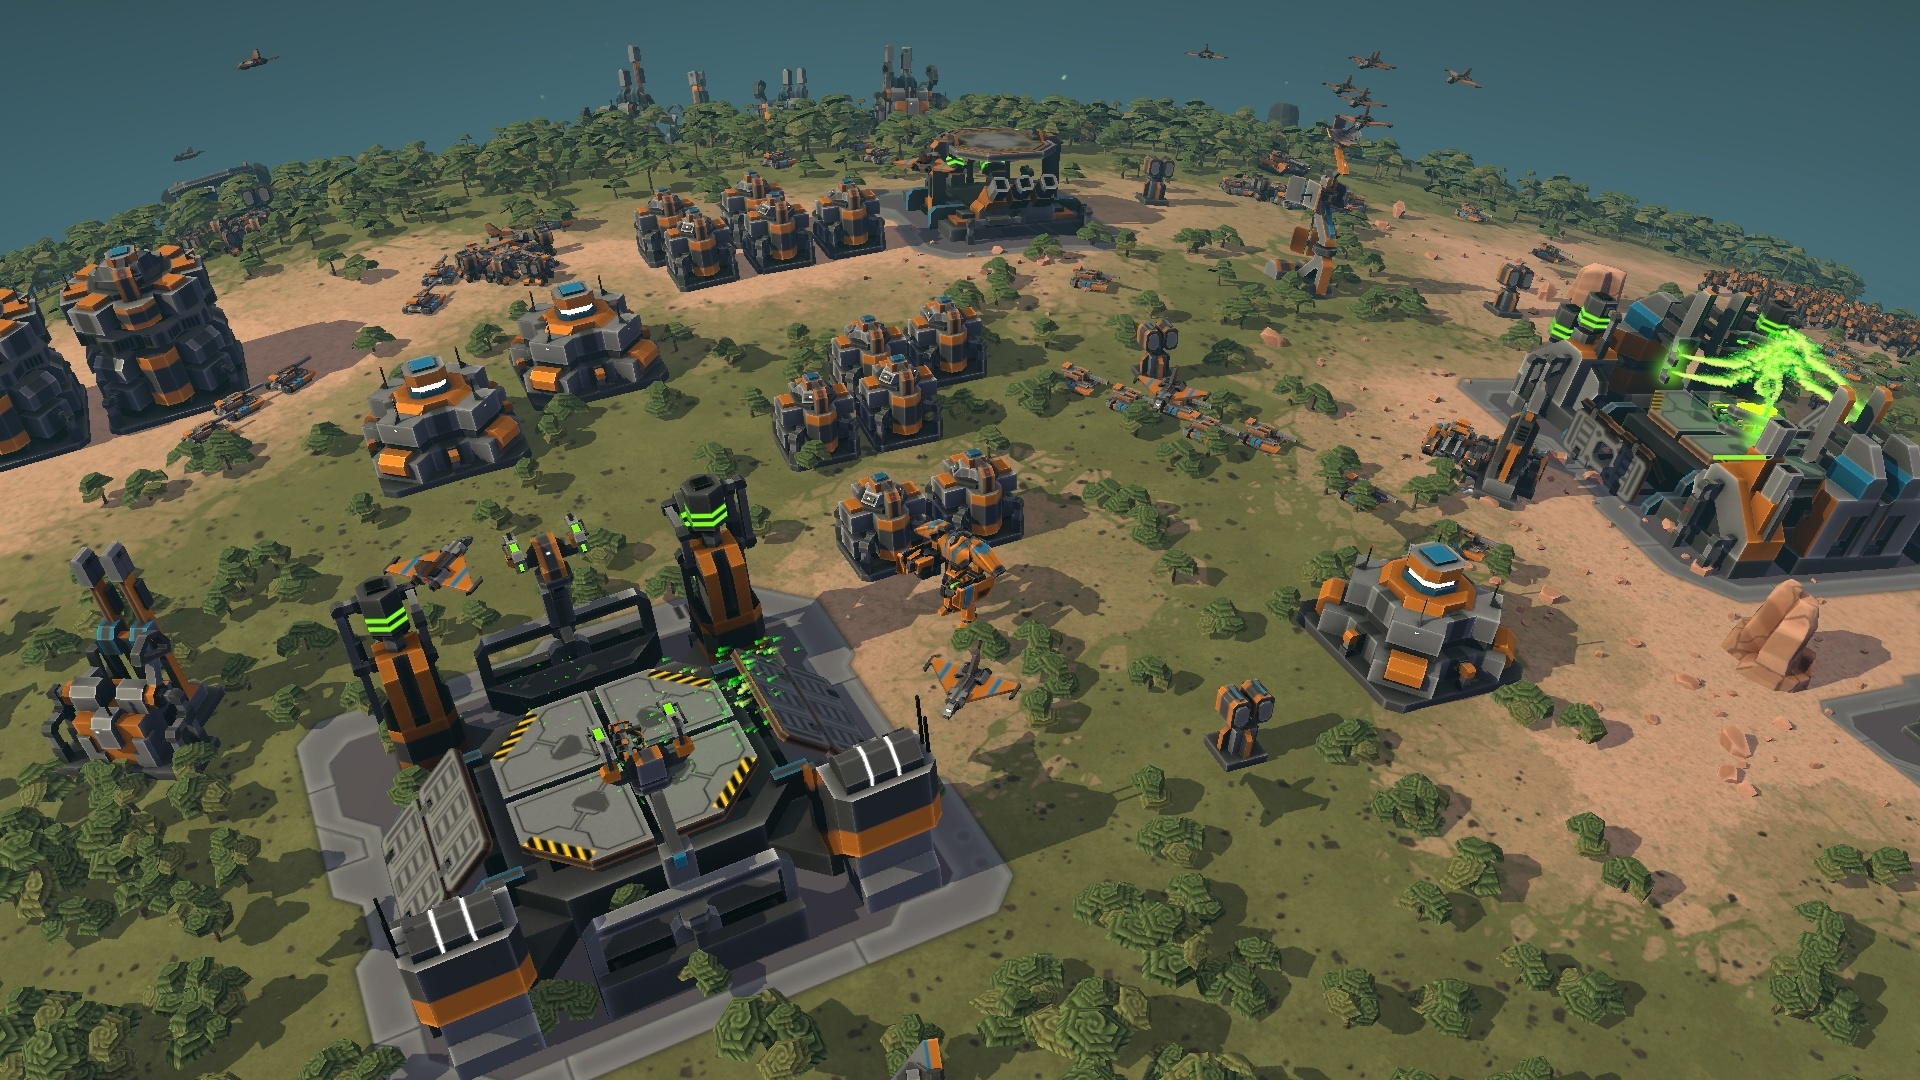 preview of planetary annihilation pc gamingshogun. Black Bedroom Furniture Sets. Home Design Ideas